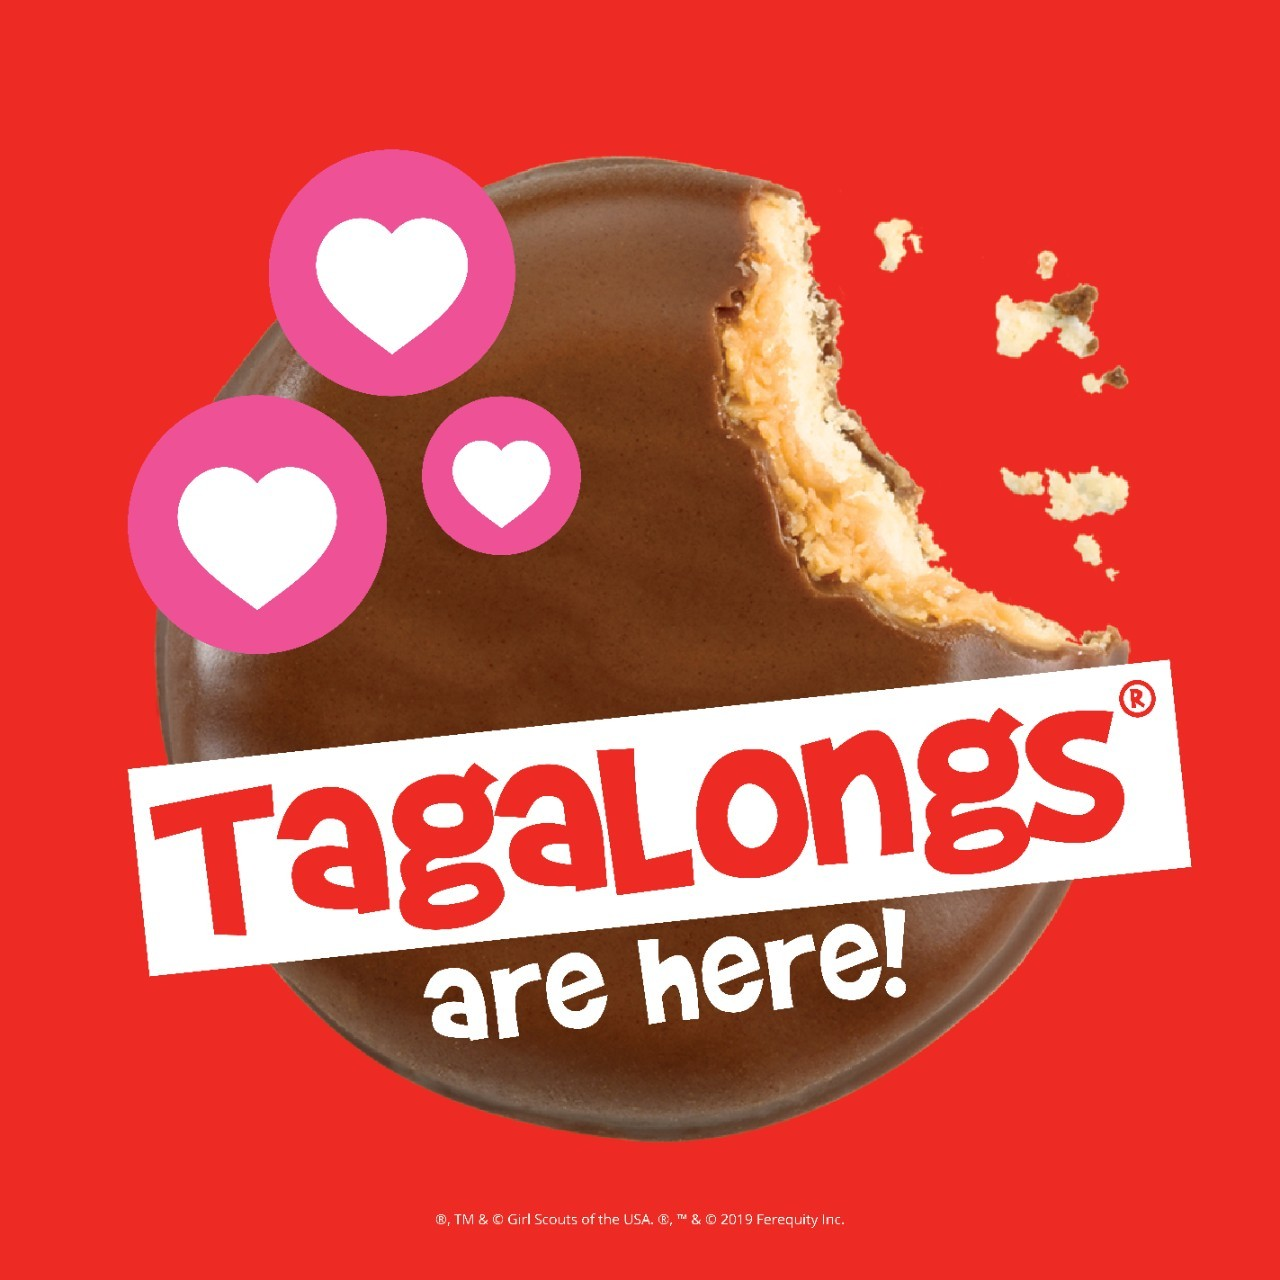 Tagalongs are here